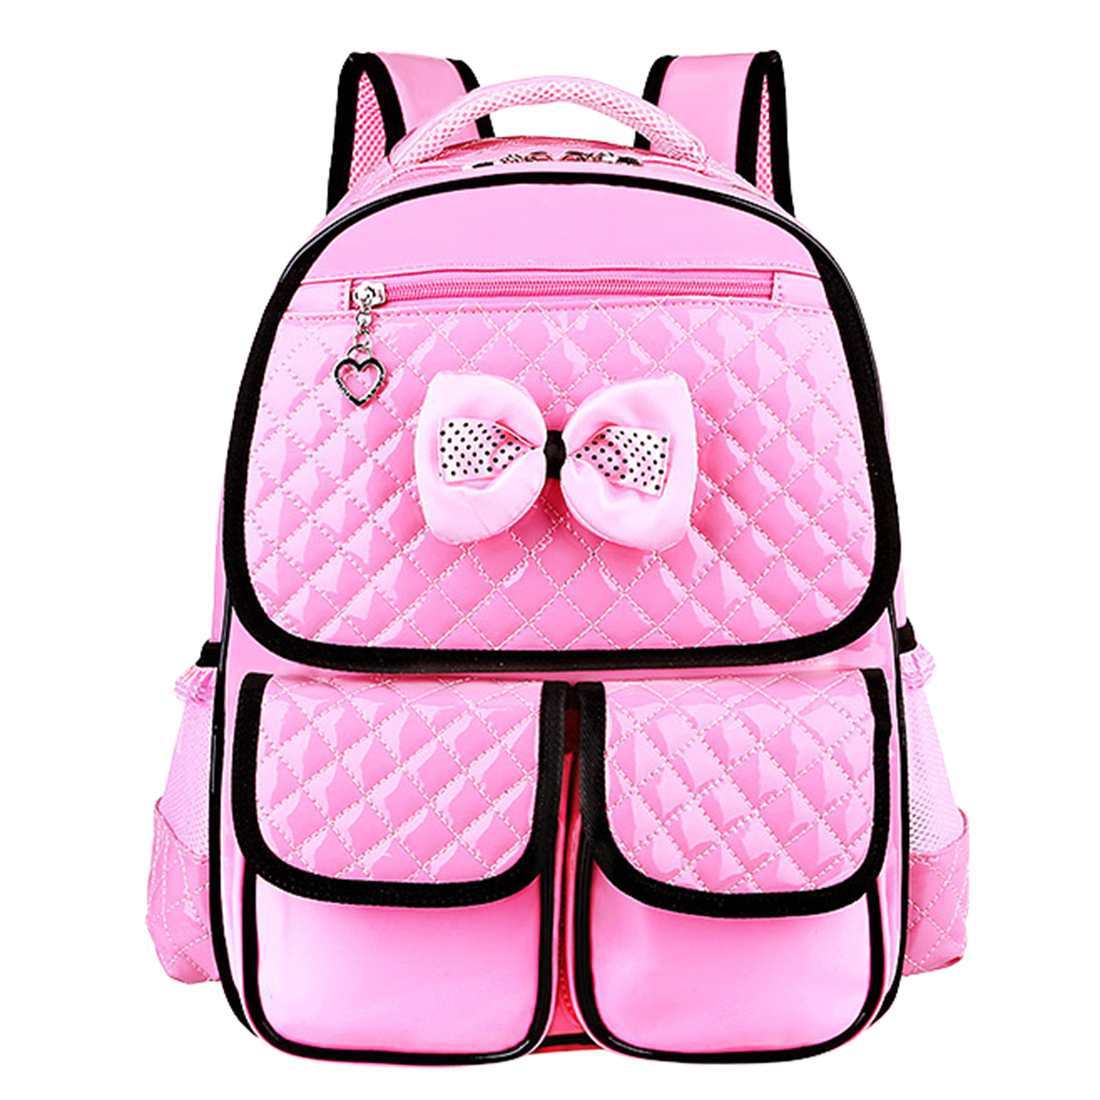 Girls School Backpack Pink Children Lovely Bowknot Plaid PU Leather Large Capacity Backpack School Student Shoulder Bag